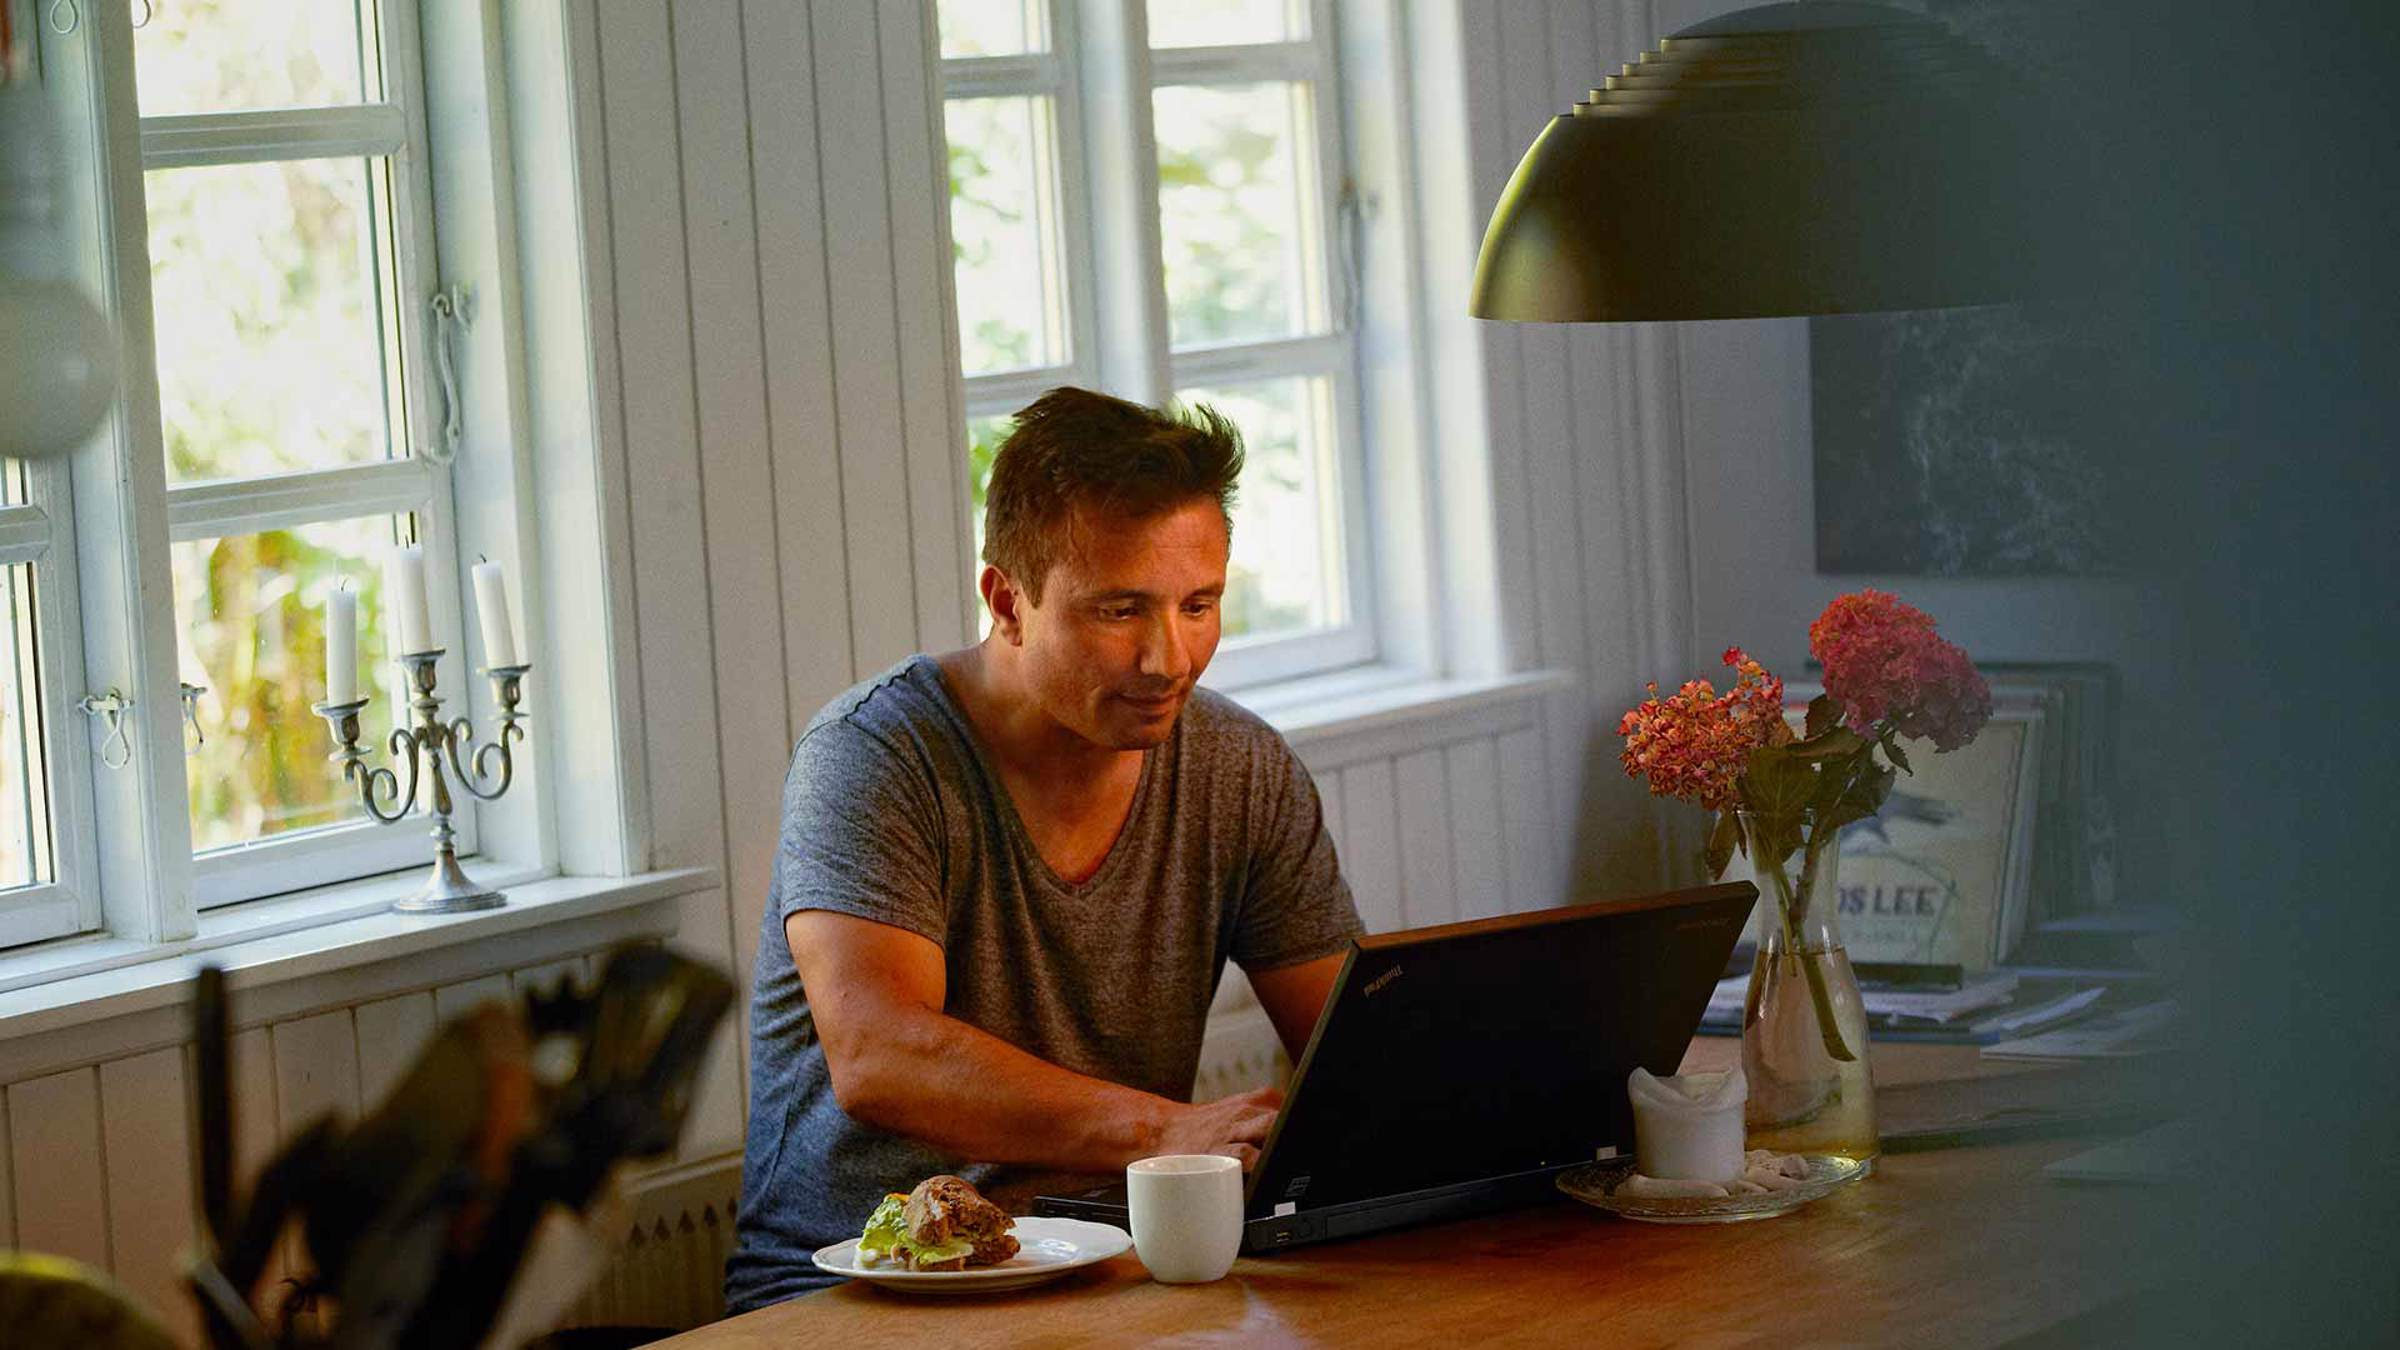 Man using a laptop with a sandwich and mug by his side